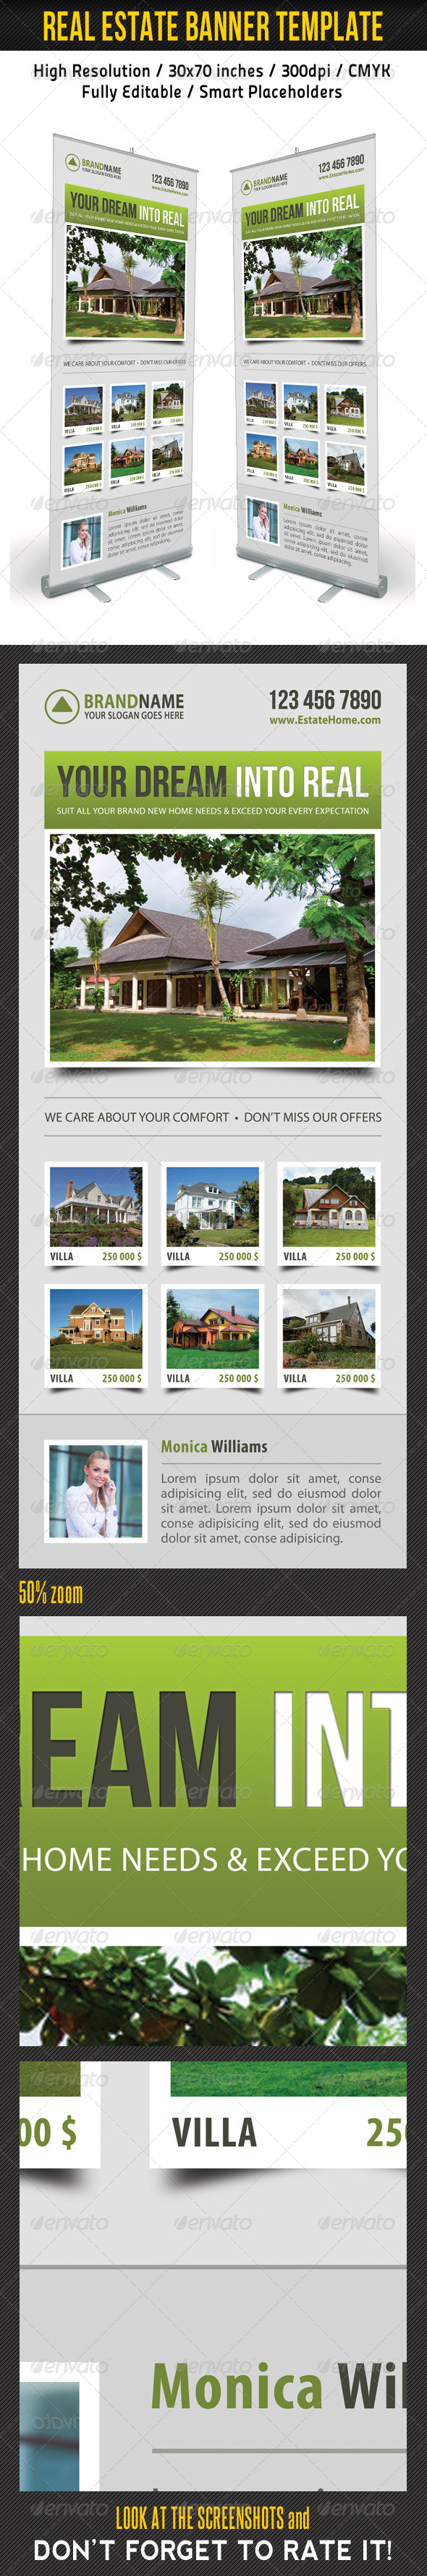 Real Estate Banner Template 08 - Signage Print Templates